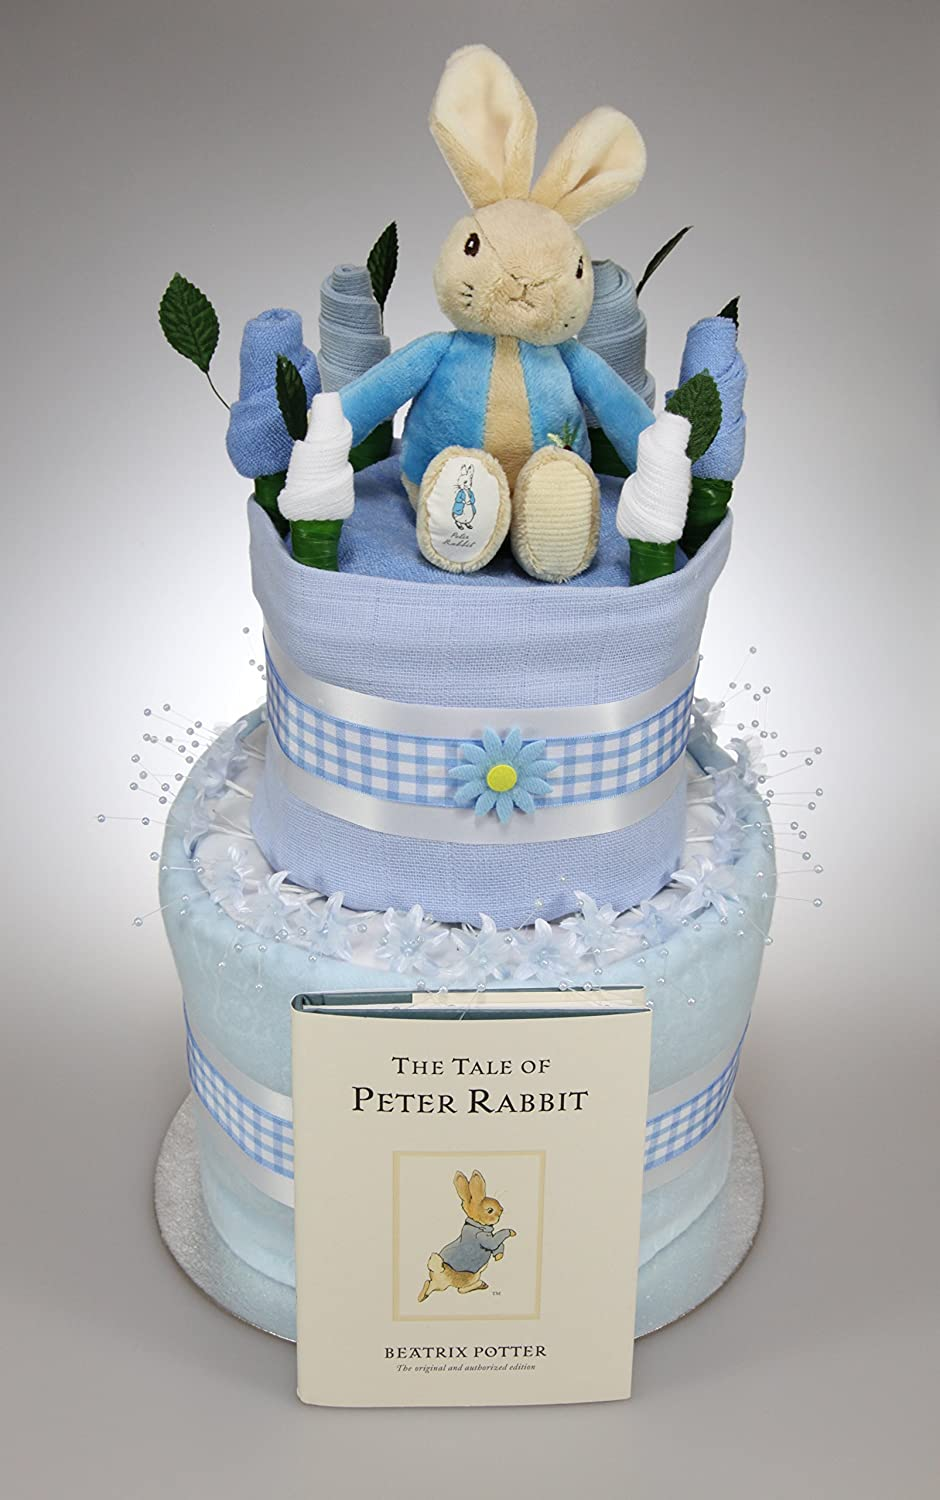 Baby Boy Two Tier Nappy Cake with Peter Rabbit Soft Toy and Book New Born Baby Shower Gift Tiny Togs Ltd